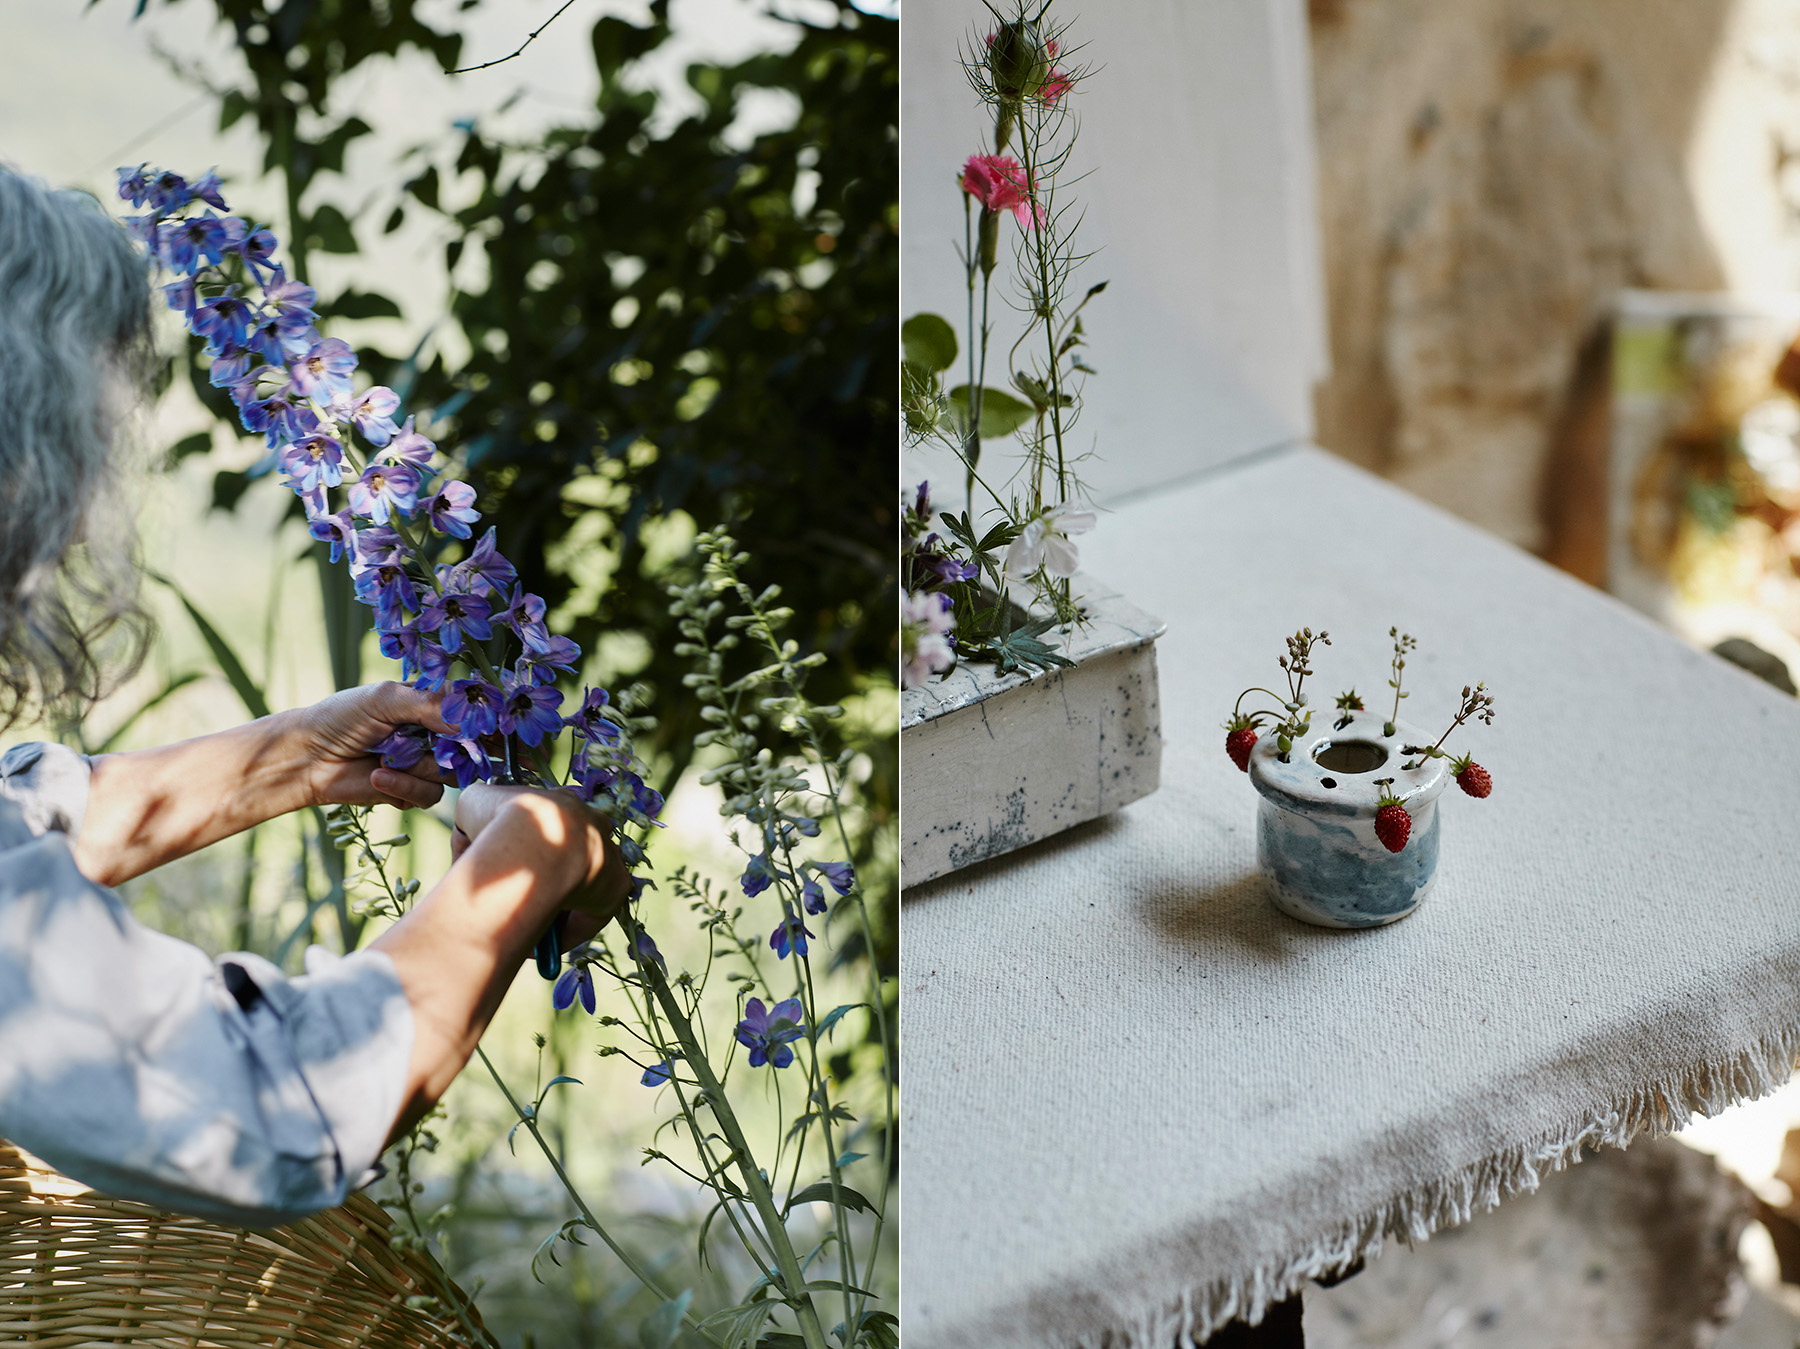 LEFT: Cécile gathering tiny flowers from her garden. RIGHT: One of her  Pique-Fleurs.